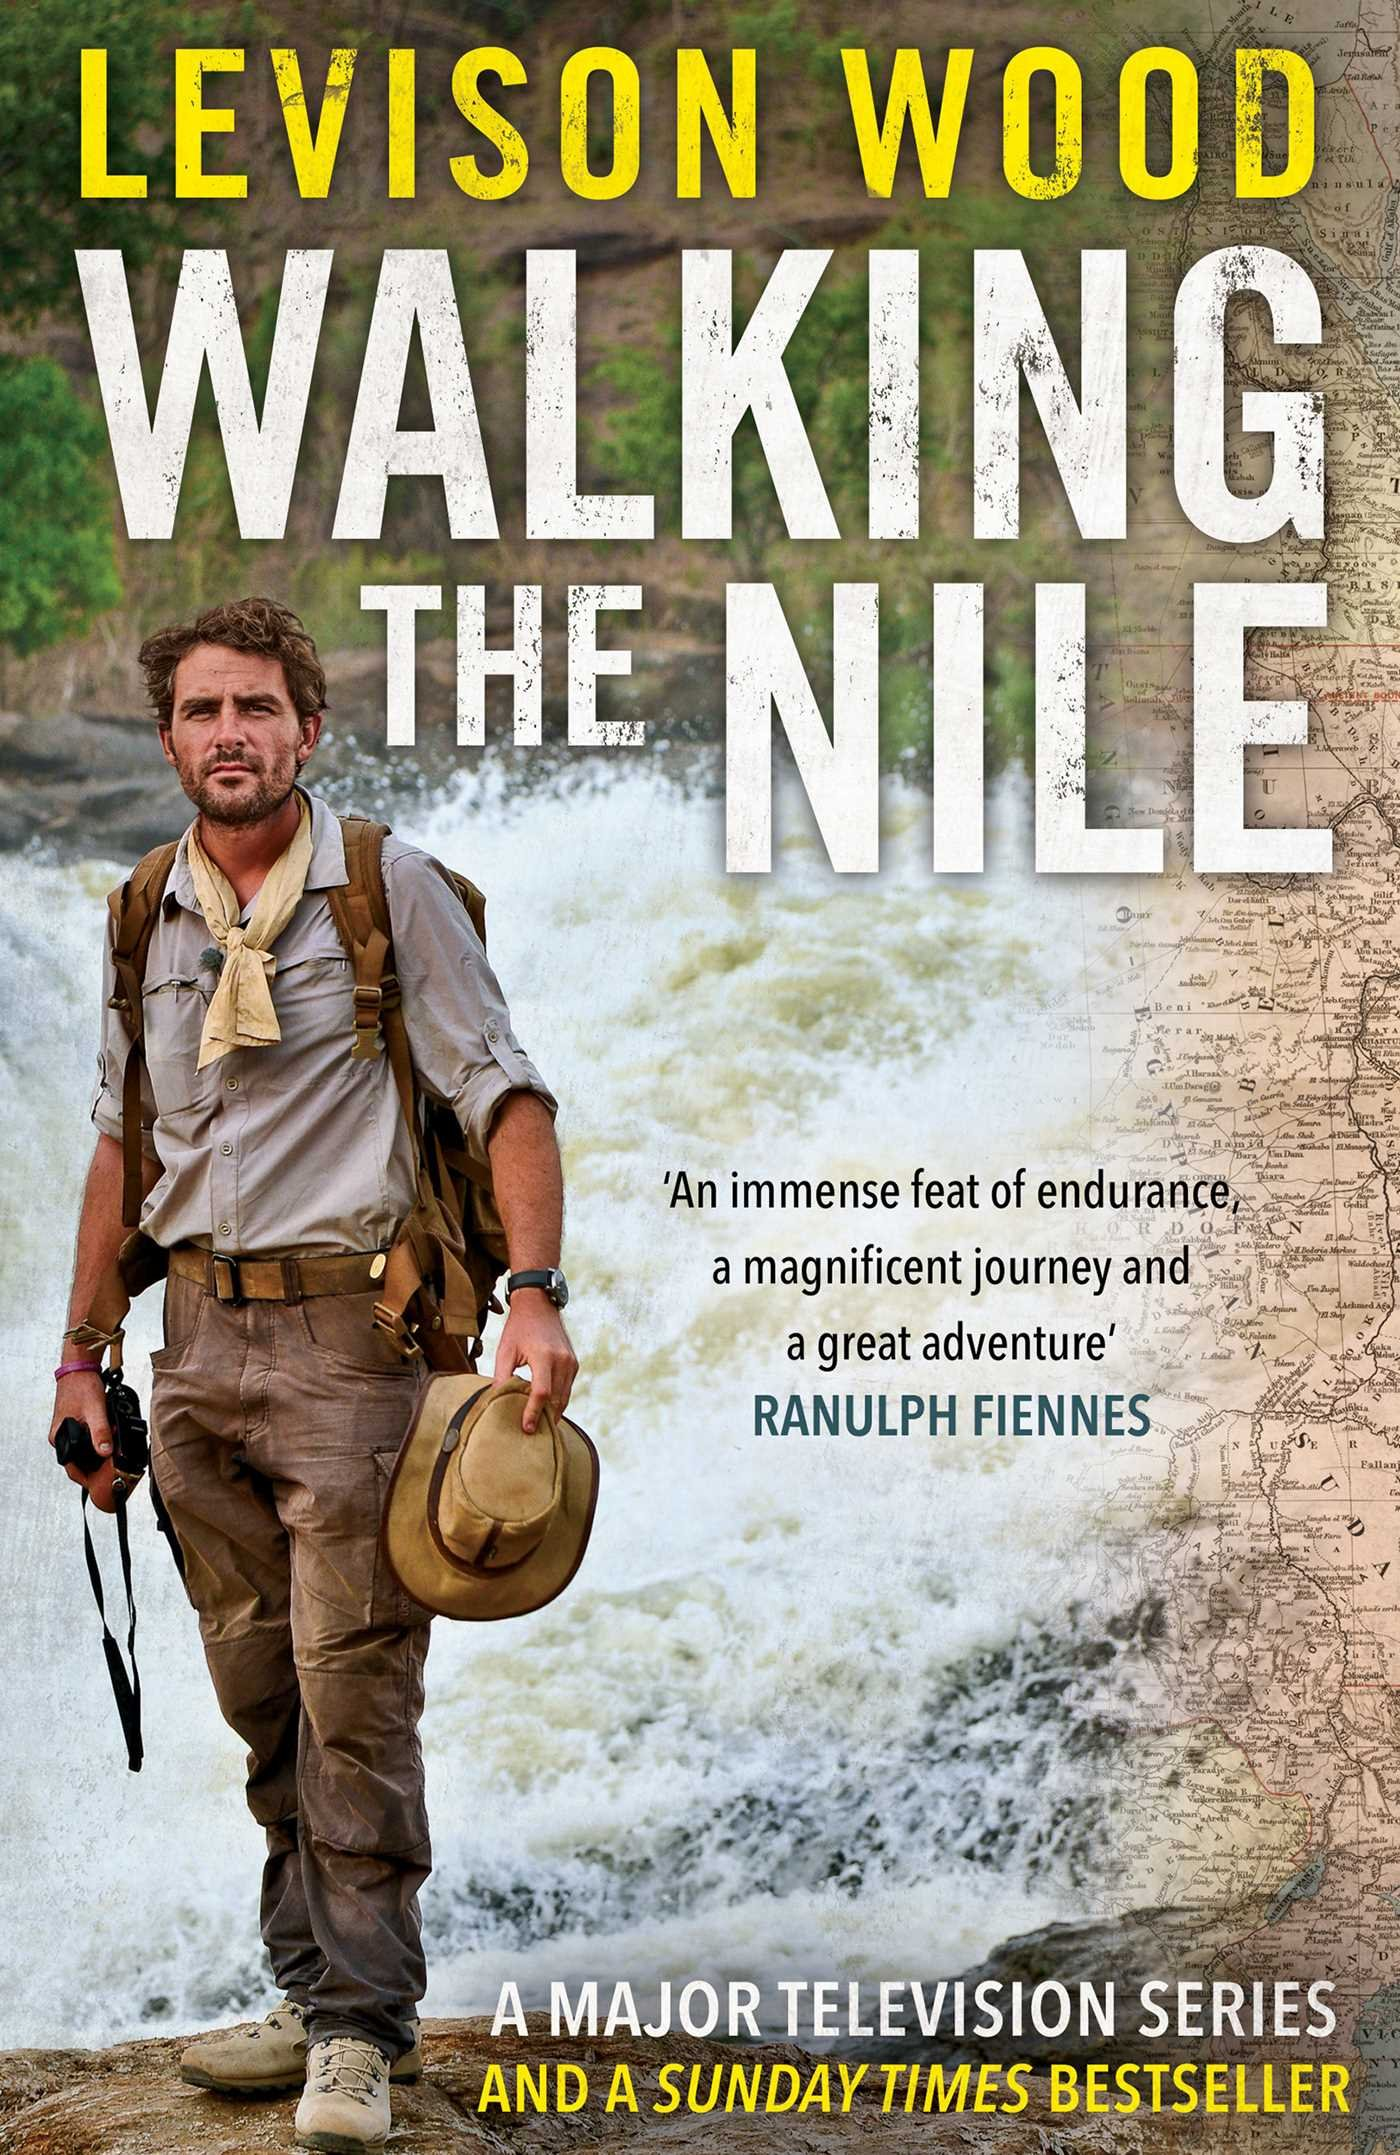 Buy Walking the Nile Book Online at Low Prices in India | Walking the Nile  Reviews & Ratings - Amazon.in